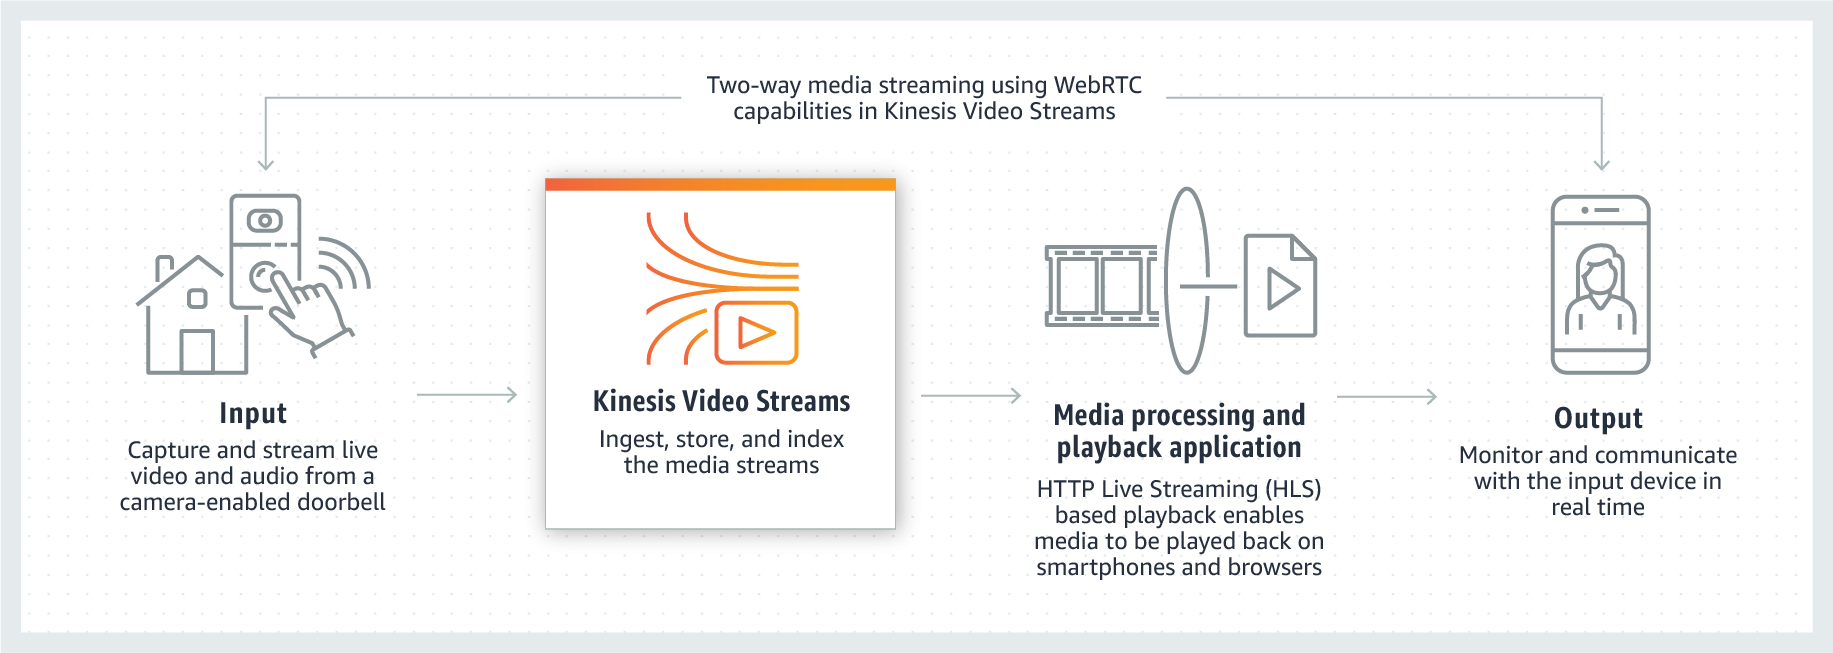 Amazon Kinesis Video Streams 智慧家居使用案例